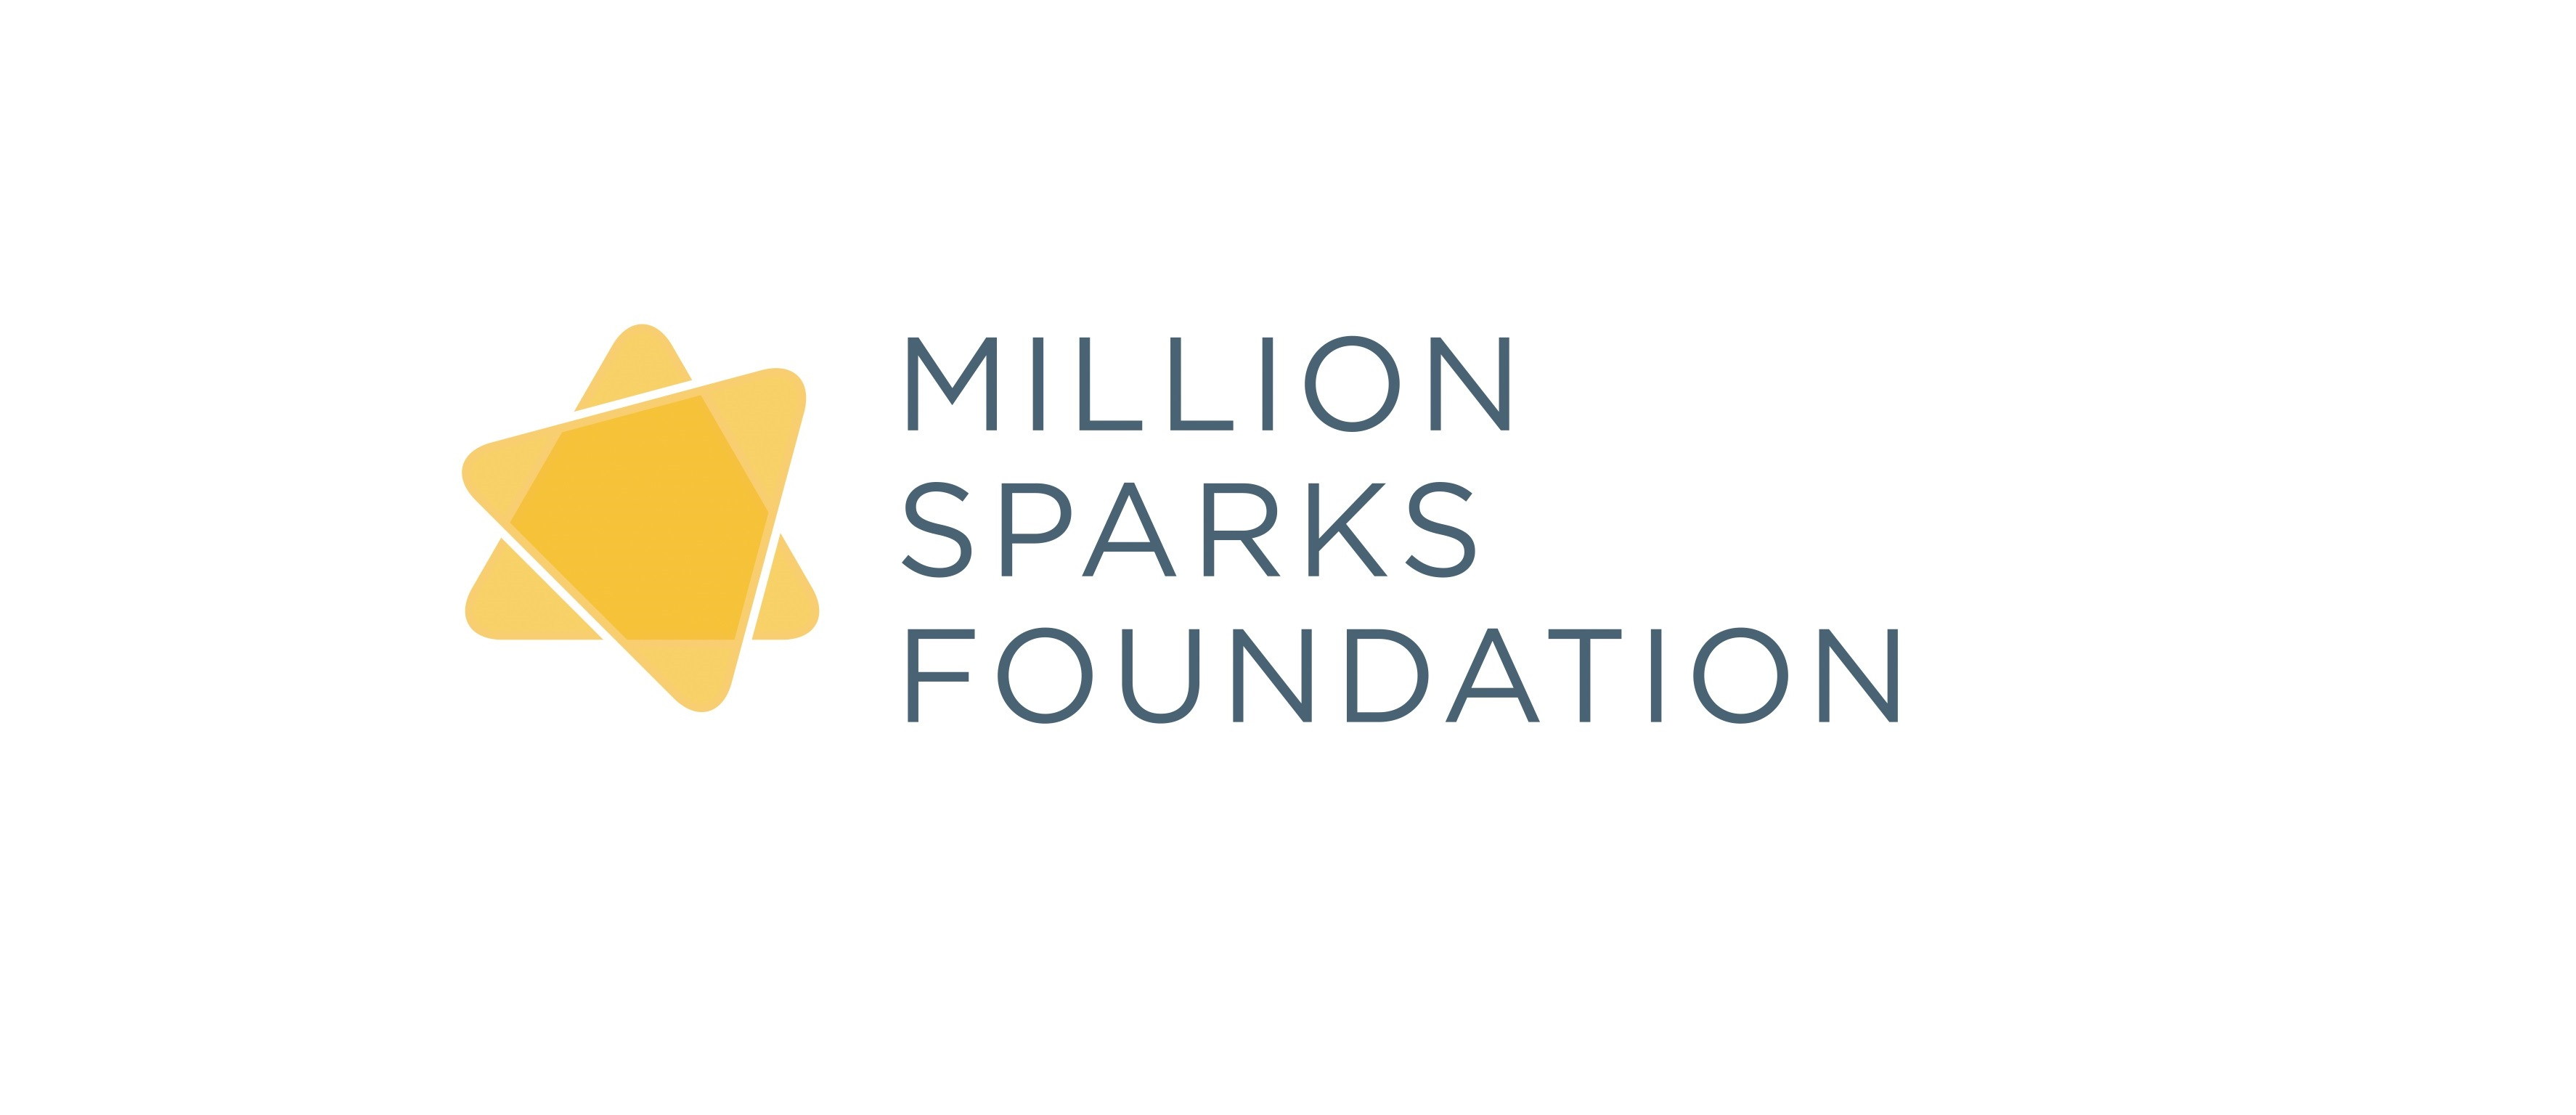 Million Sparks Foundation